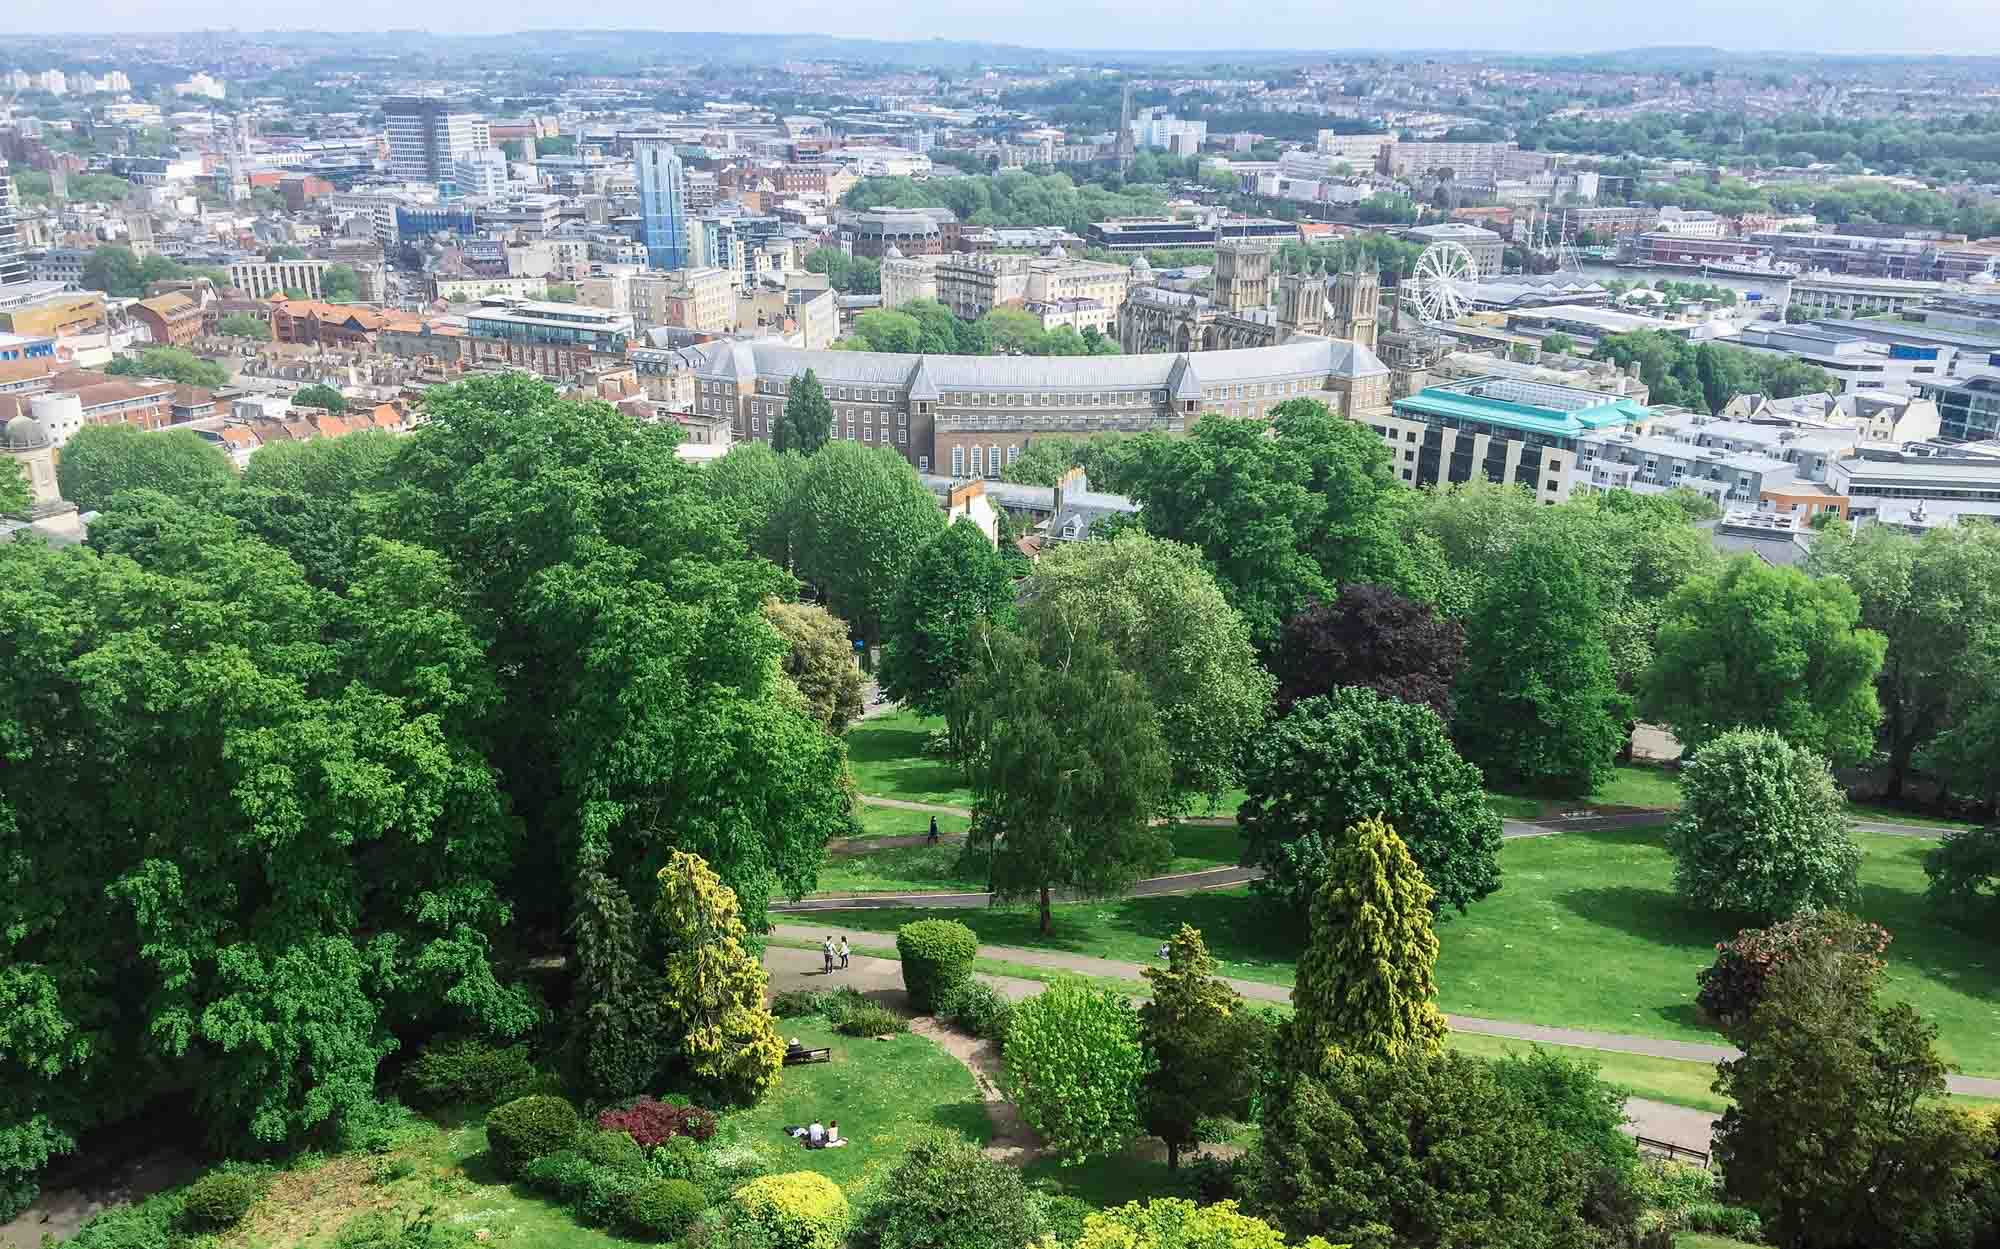 Things to do in Bristol - View from Cabot Tower on Brandon Hill